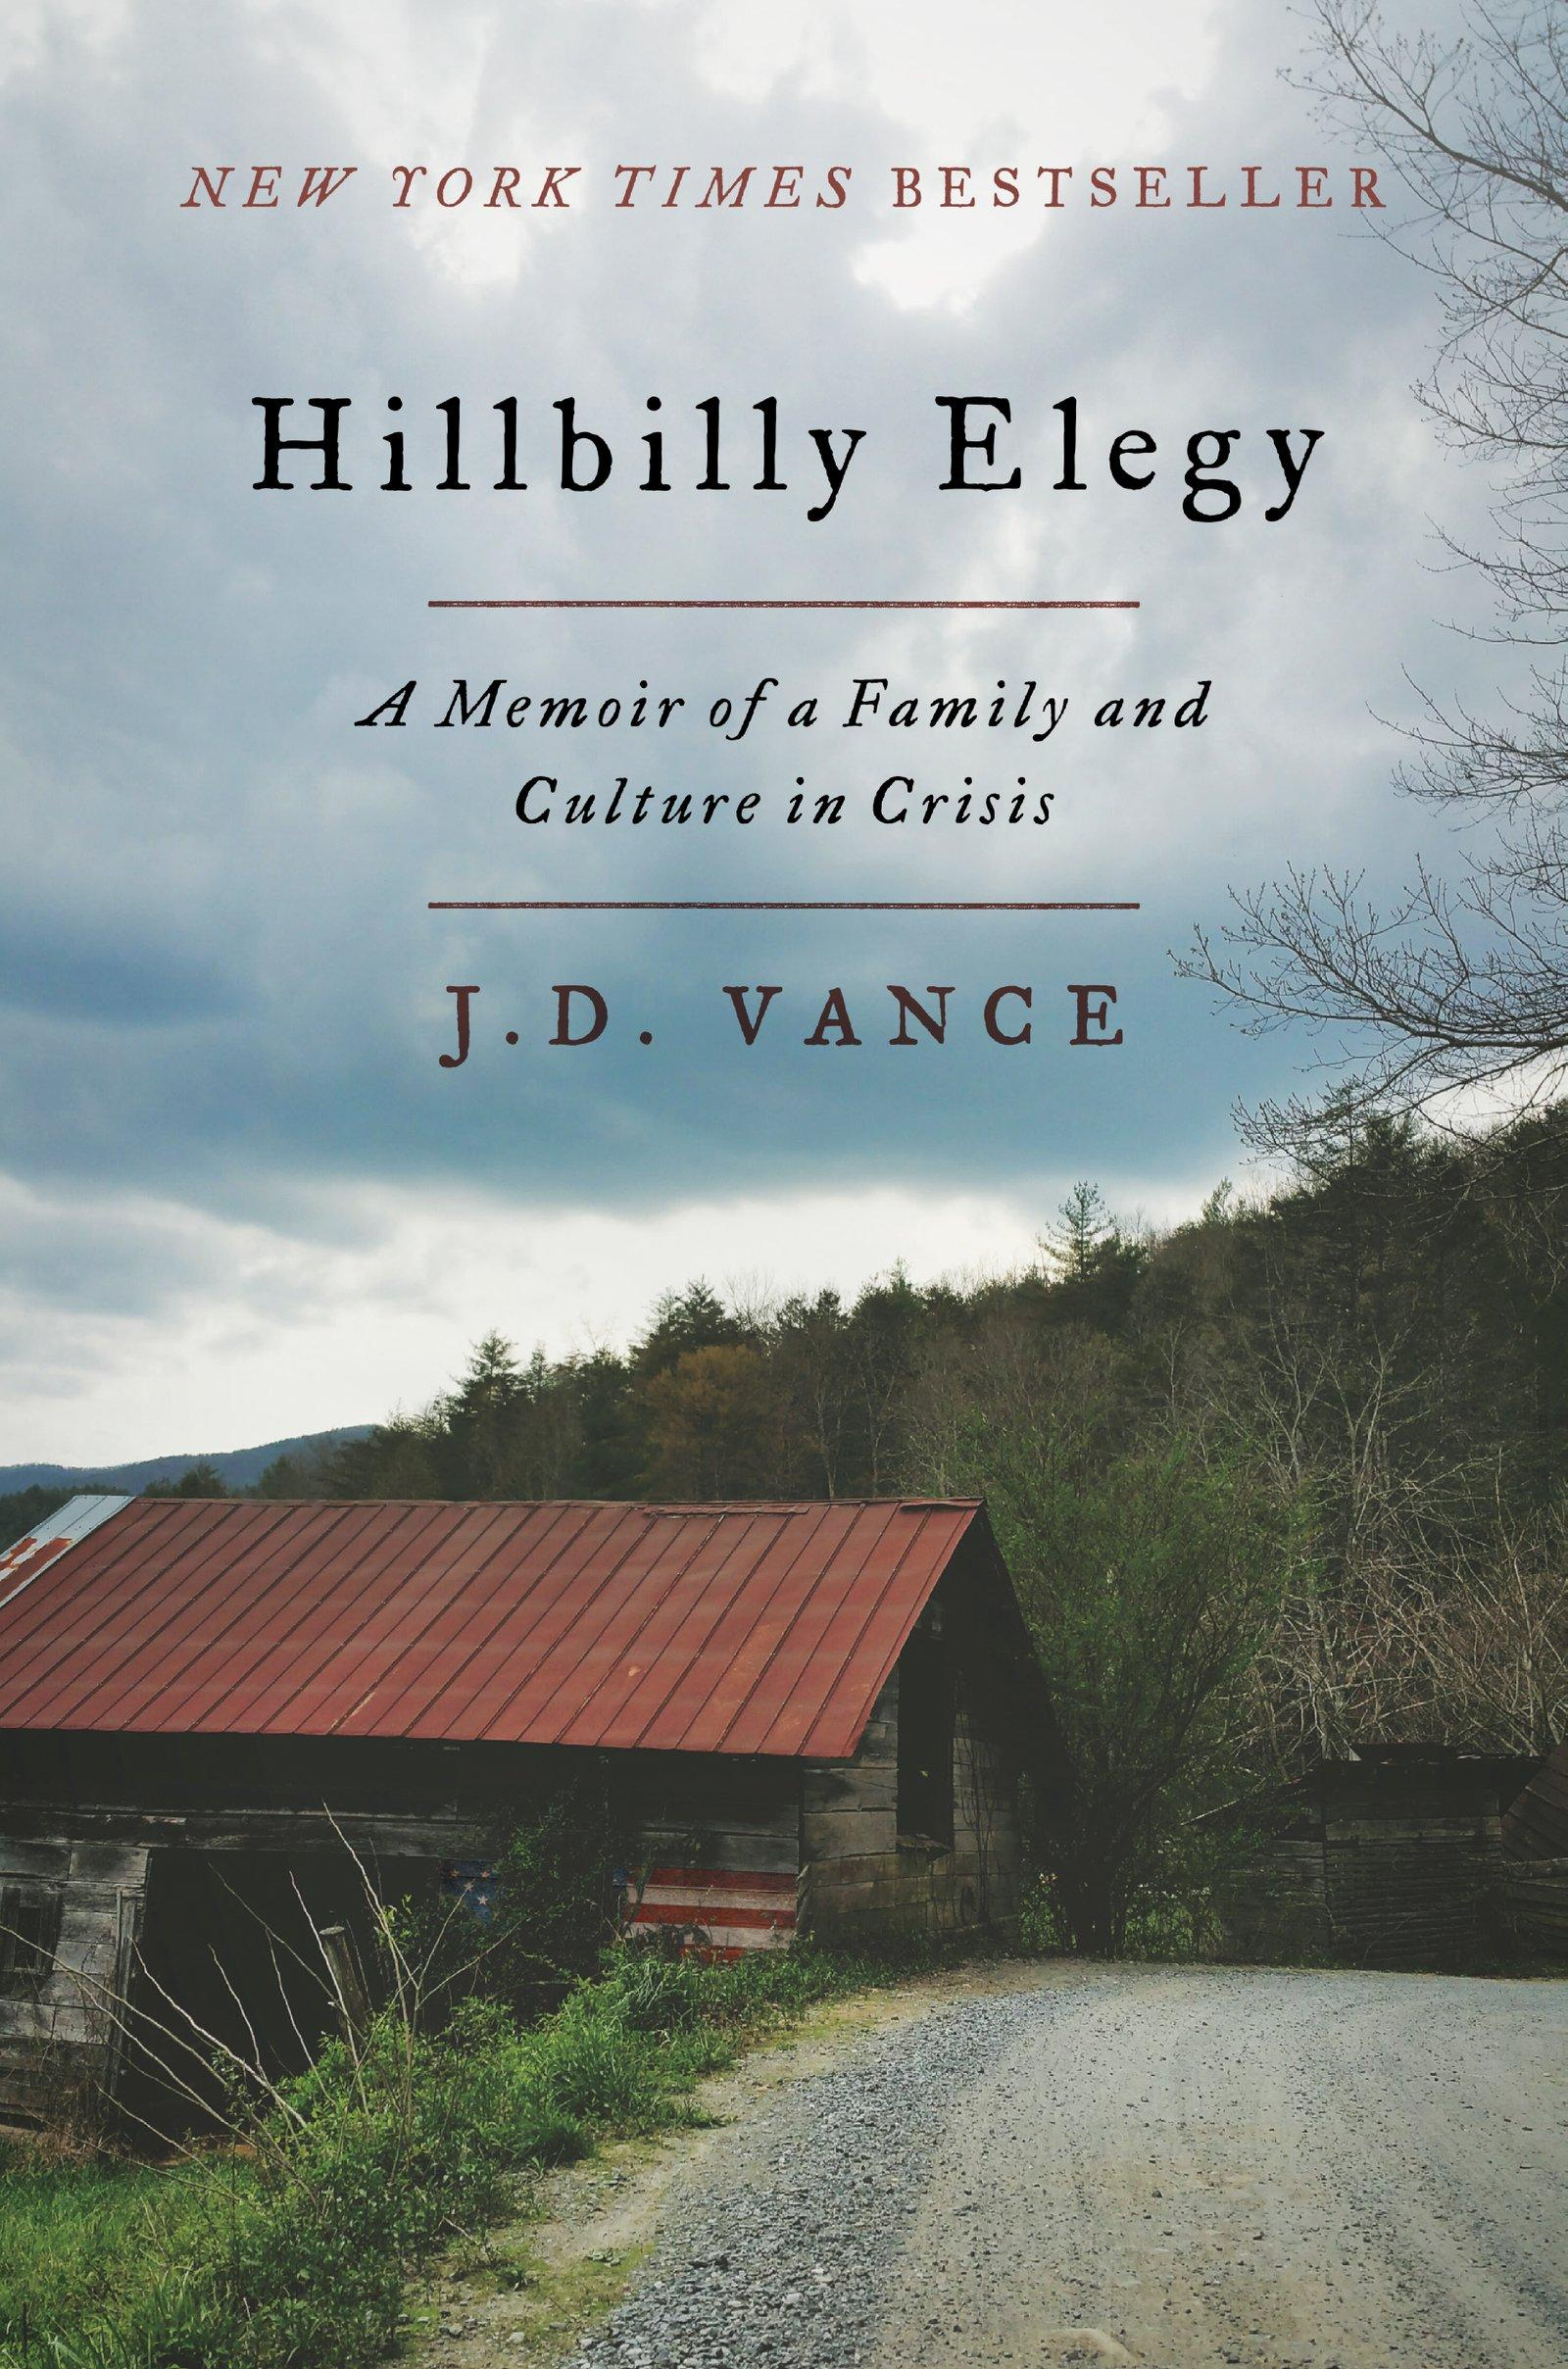 Hillbilly Elegy: A Memoir of a Family and Culture in Crisis – by J. D. Vance